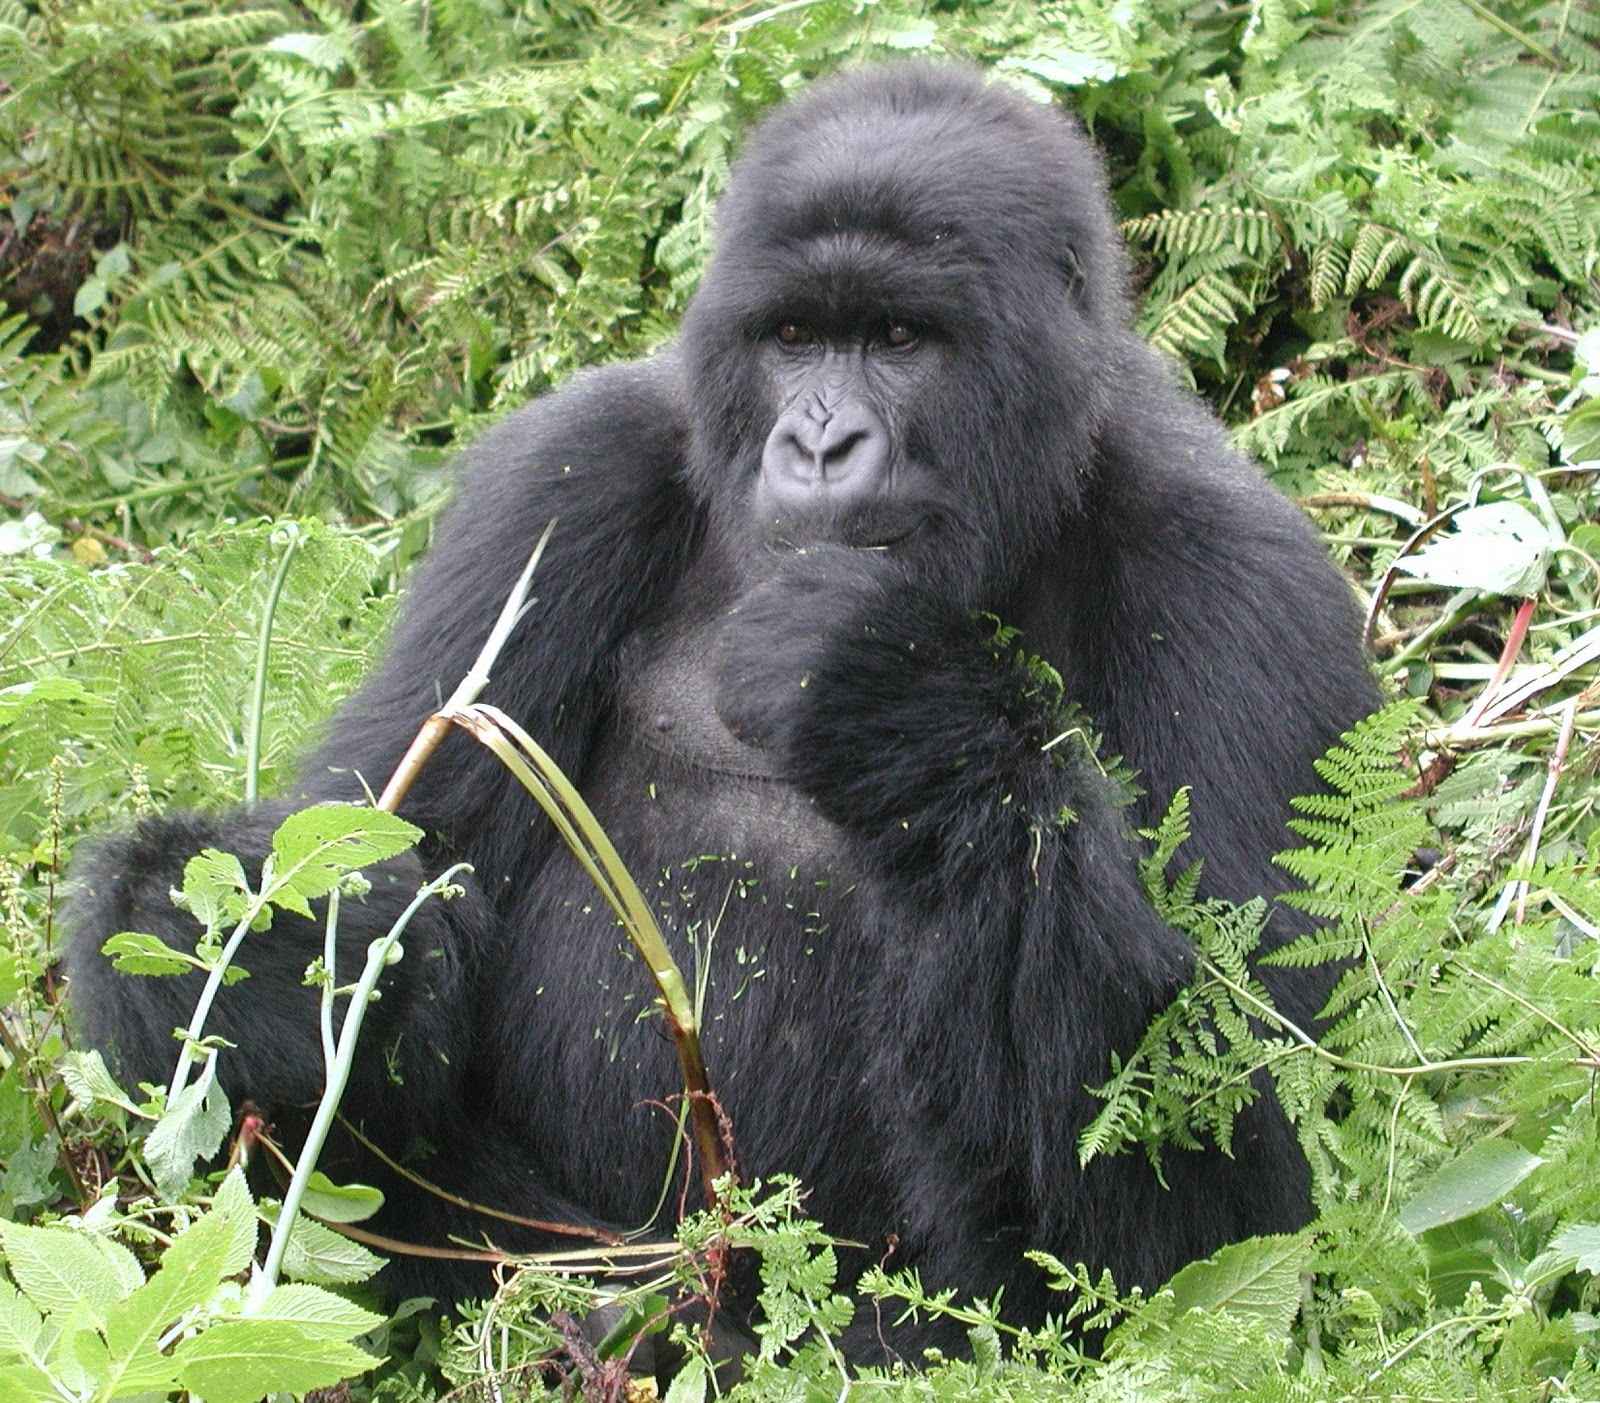 African silverback gorilla - photo#18